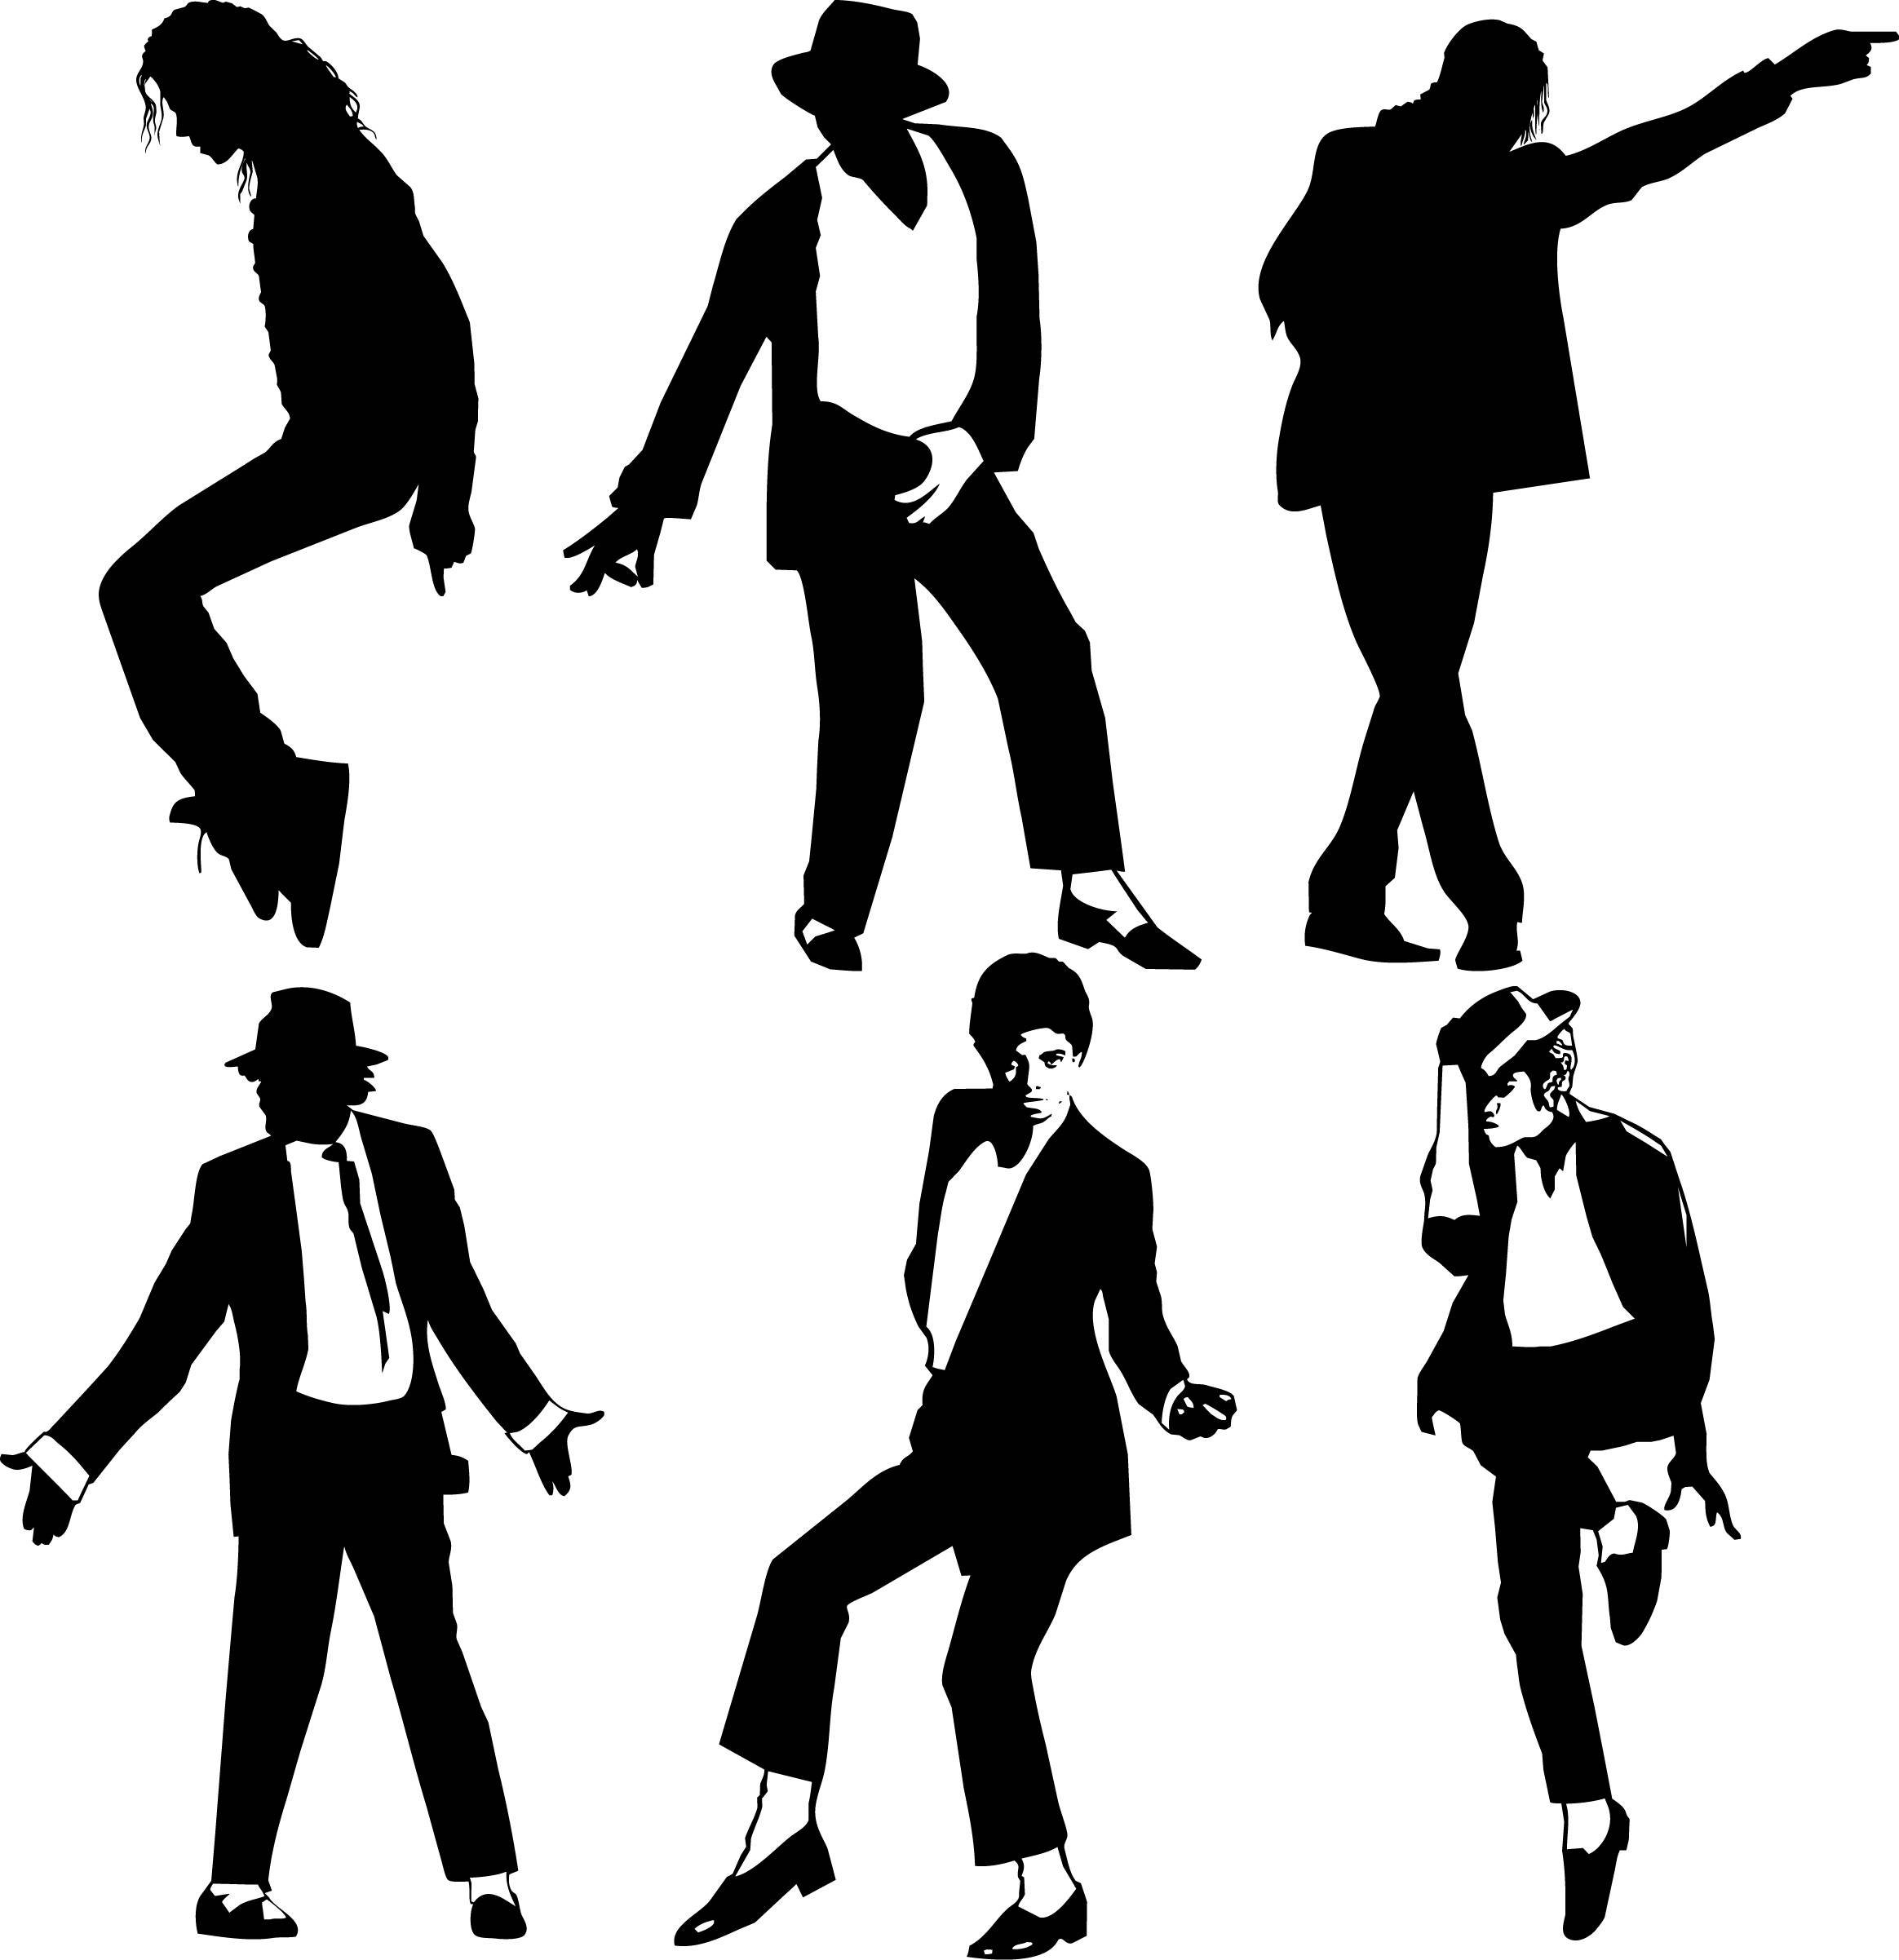 michael jackson silhouette clip art at getdrawings com free for rh getdrawings com michael jackson silhouette clip art michael jackson dance clip art